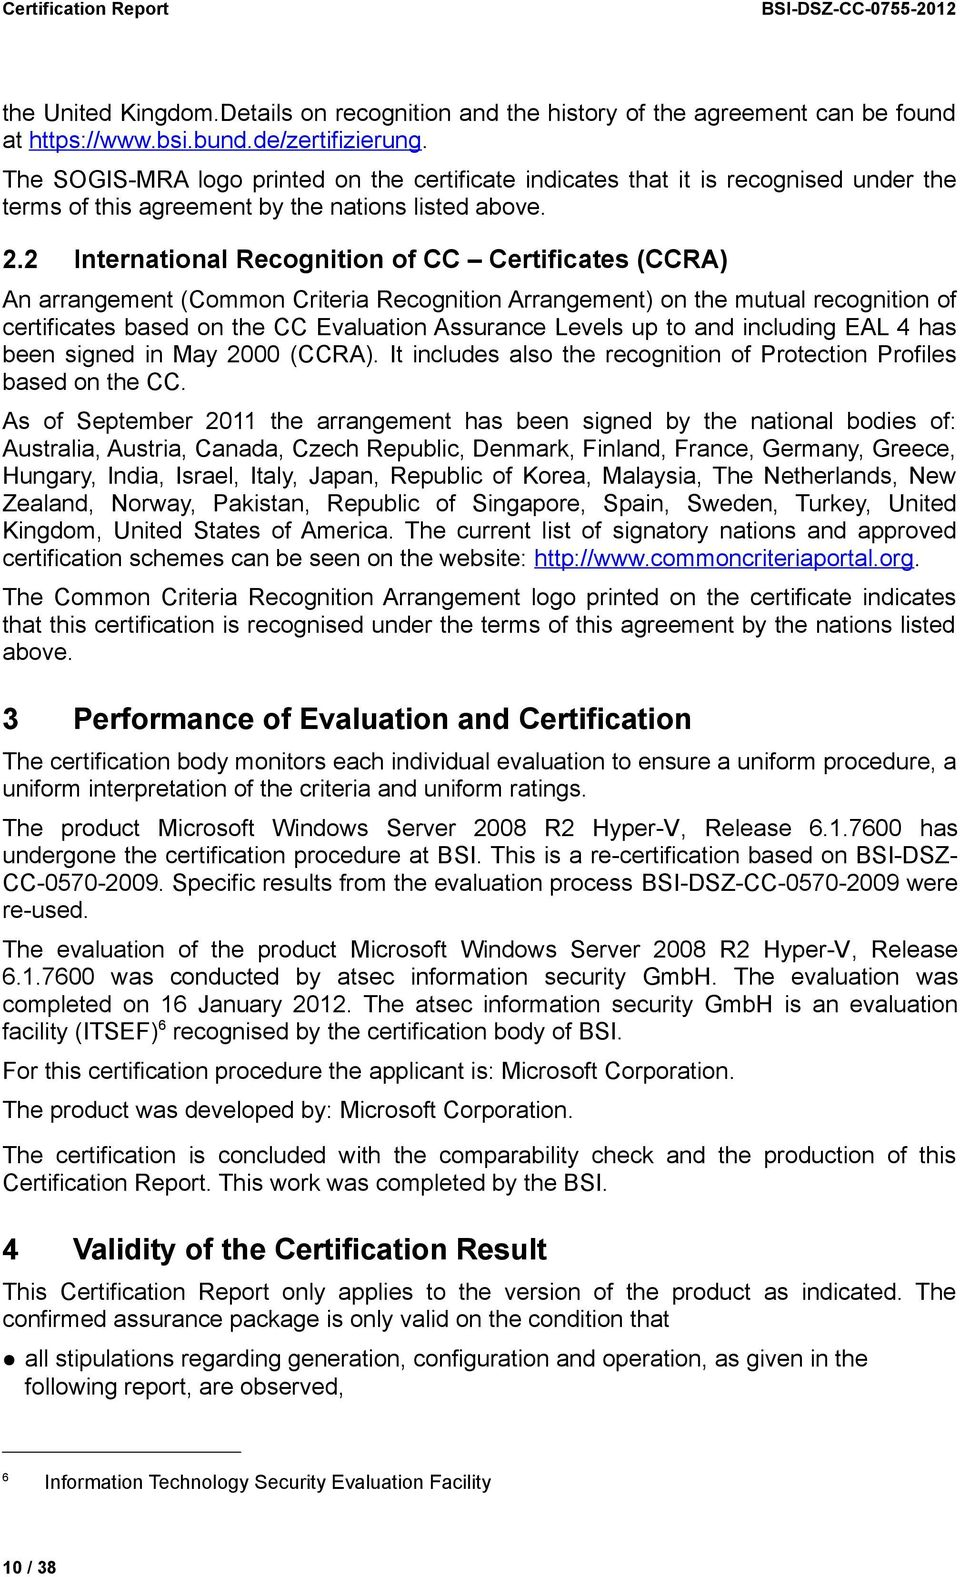 2 International Recognition of CC Certificates (CCRA) An arrangement (Common Criteria Recognition Arrangement) on the mutual recognition of certificates based on the CC Evaluation Assurance Levels up